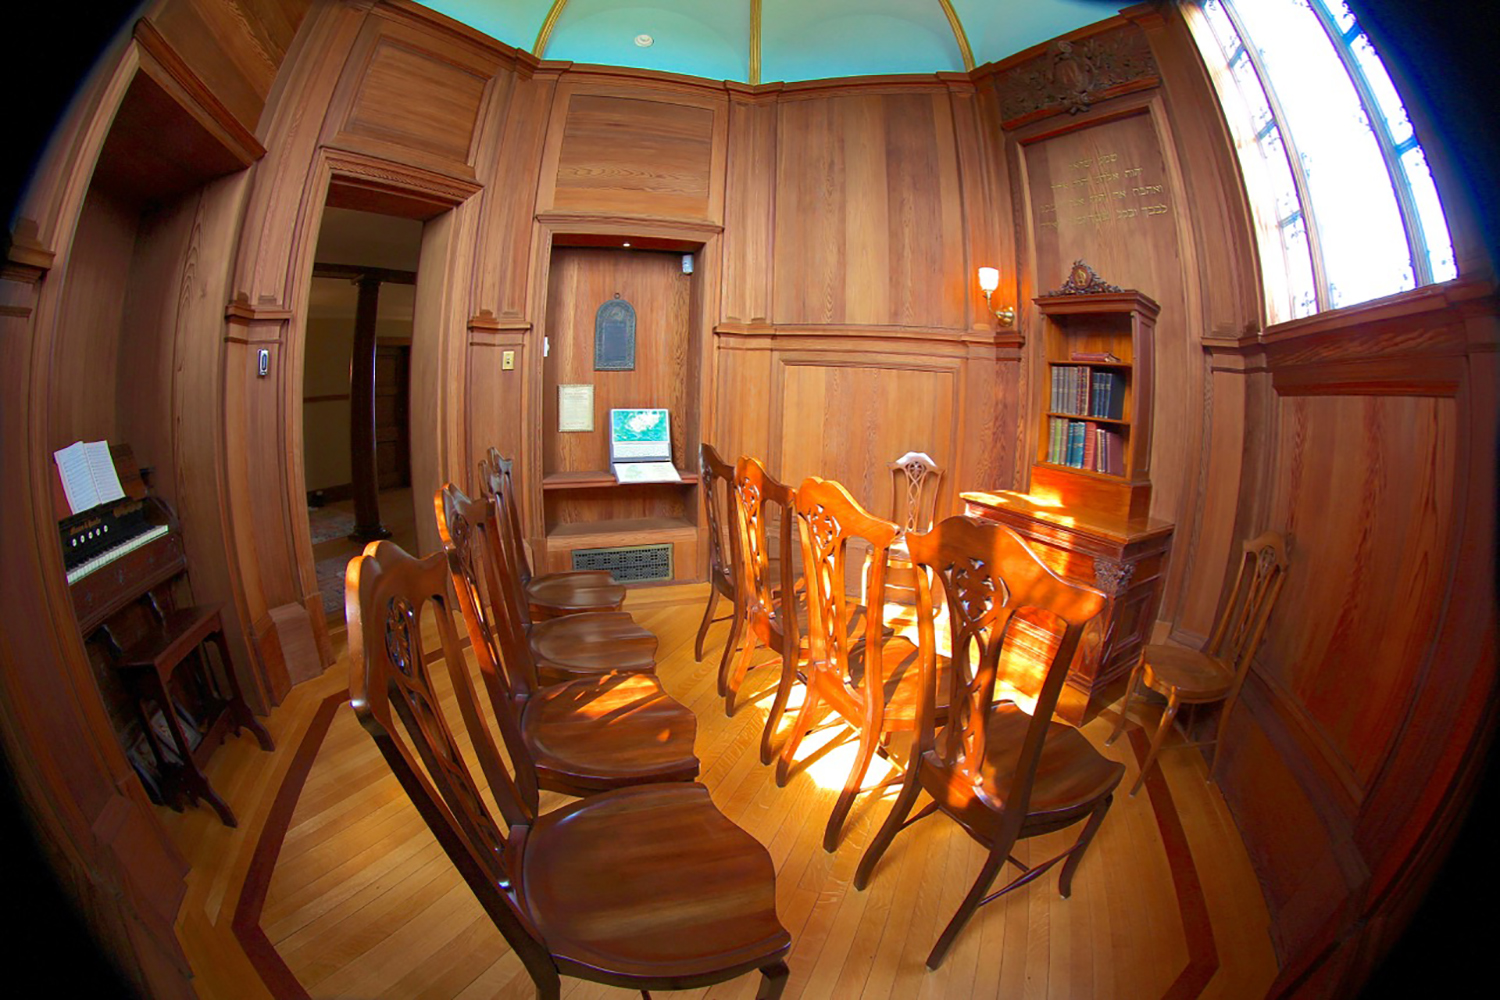 Figure 7: The Cairnwood chapel, looking north toward the entrance. The room, octagonal in shape, is located in the tower at the top of the main staircase.